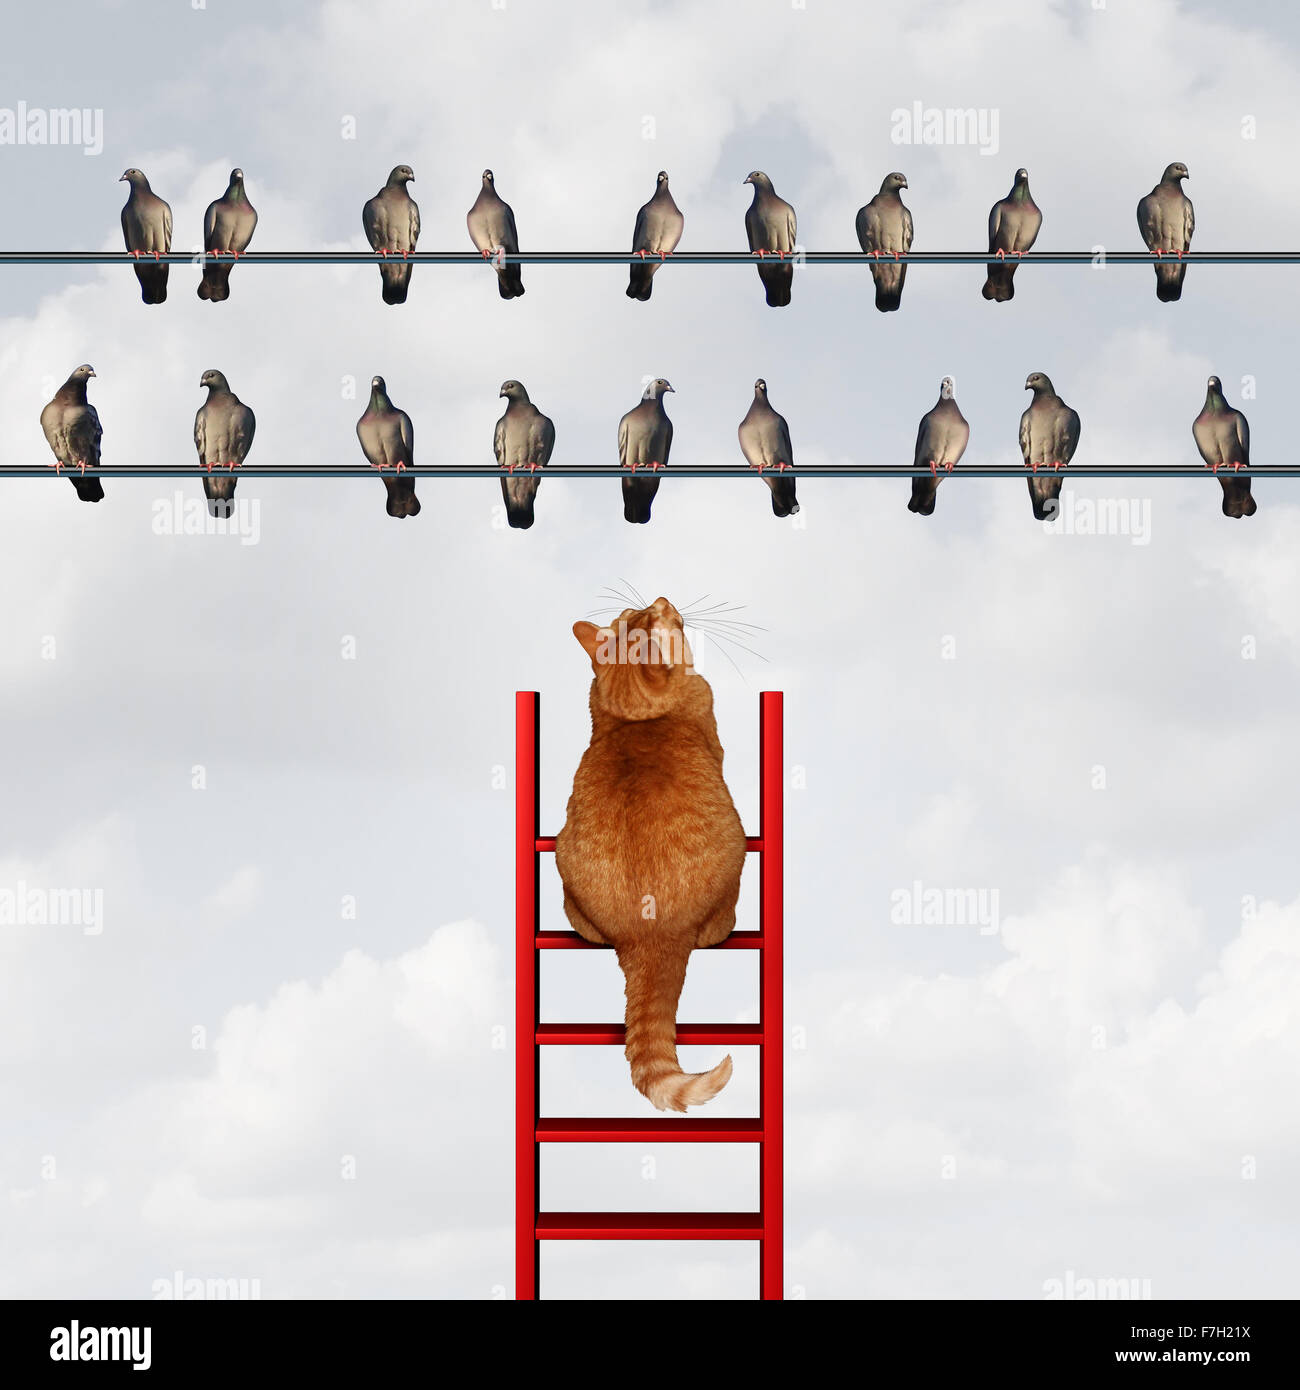 Reaching your goal concept and setting goals business metaphor as a cat climbing a ladder to reach a group of birds - Stock Image